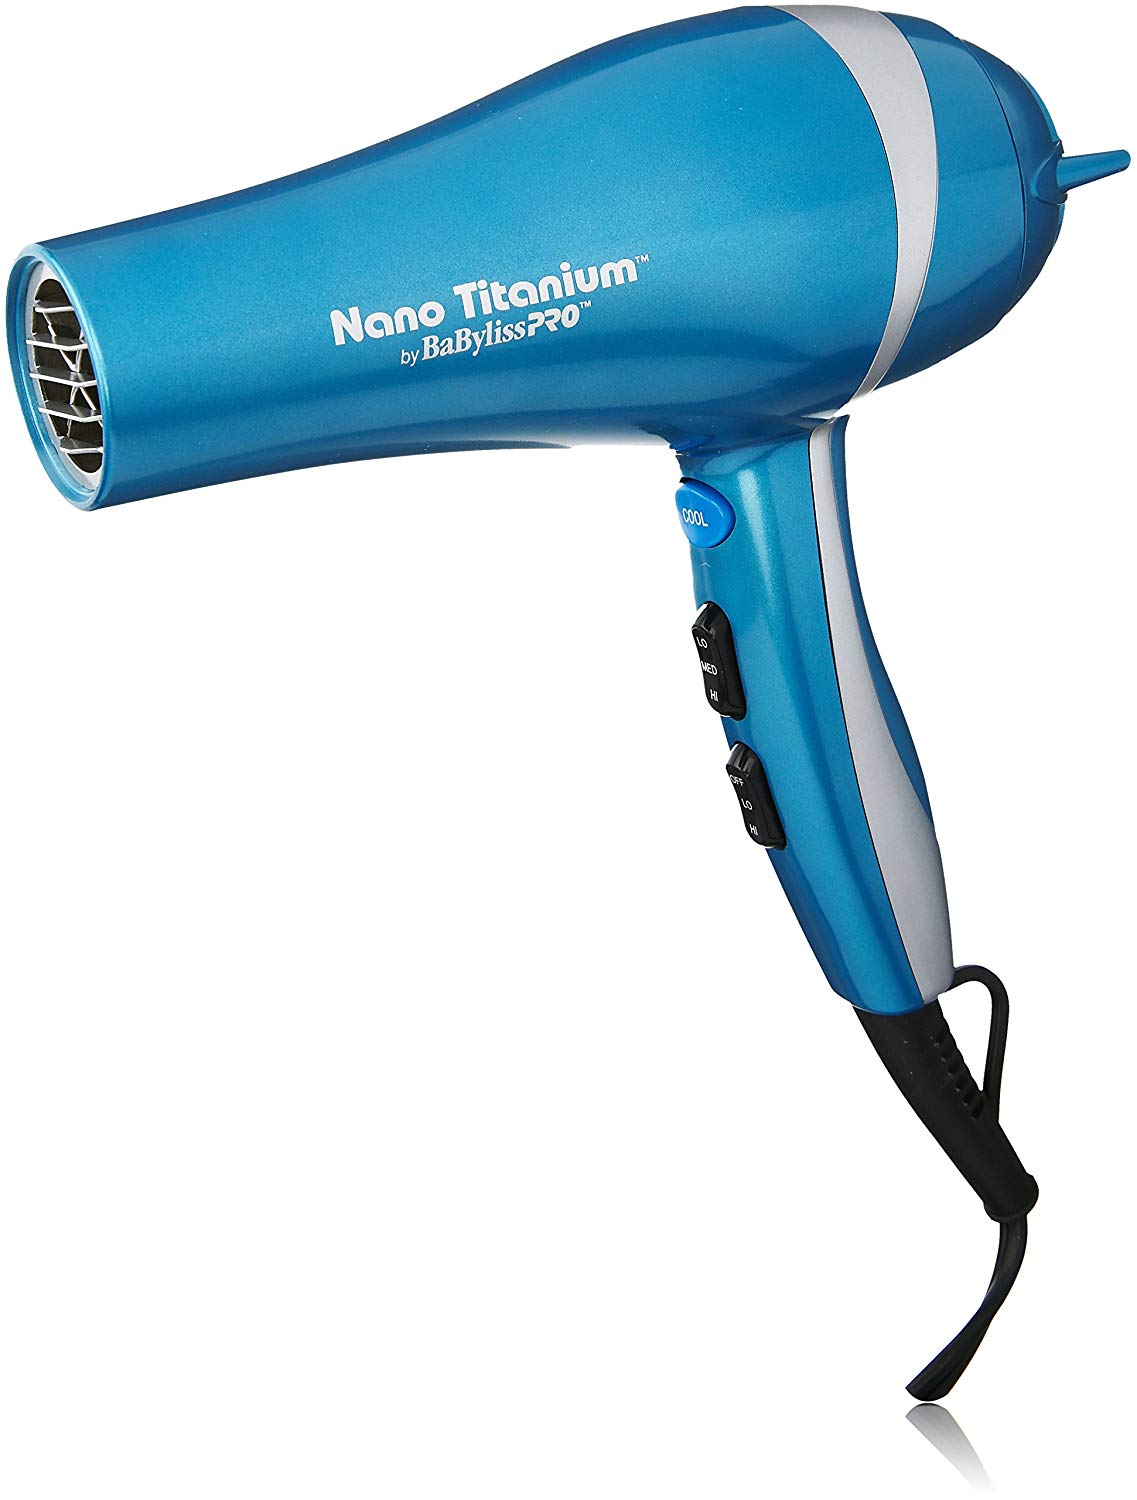 Babyliss Pro Nano Titanium Travel hairdryer, the best travel hair dryr available